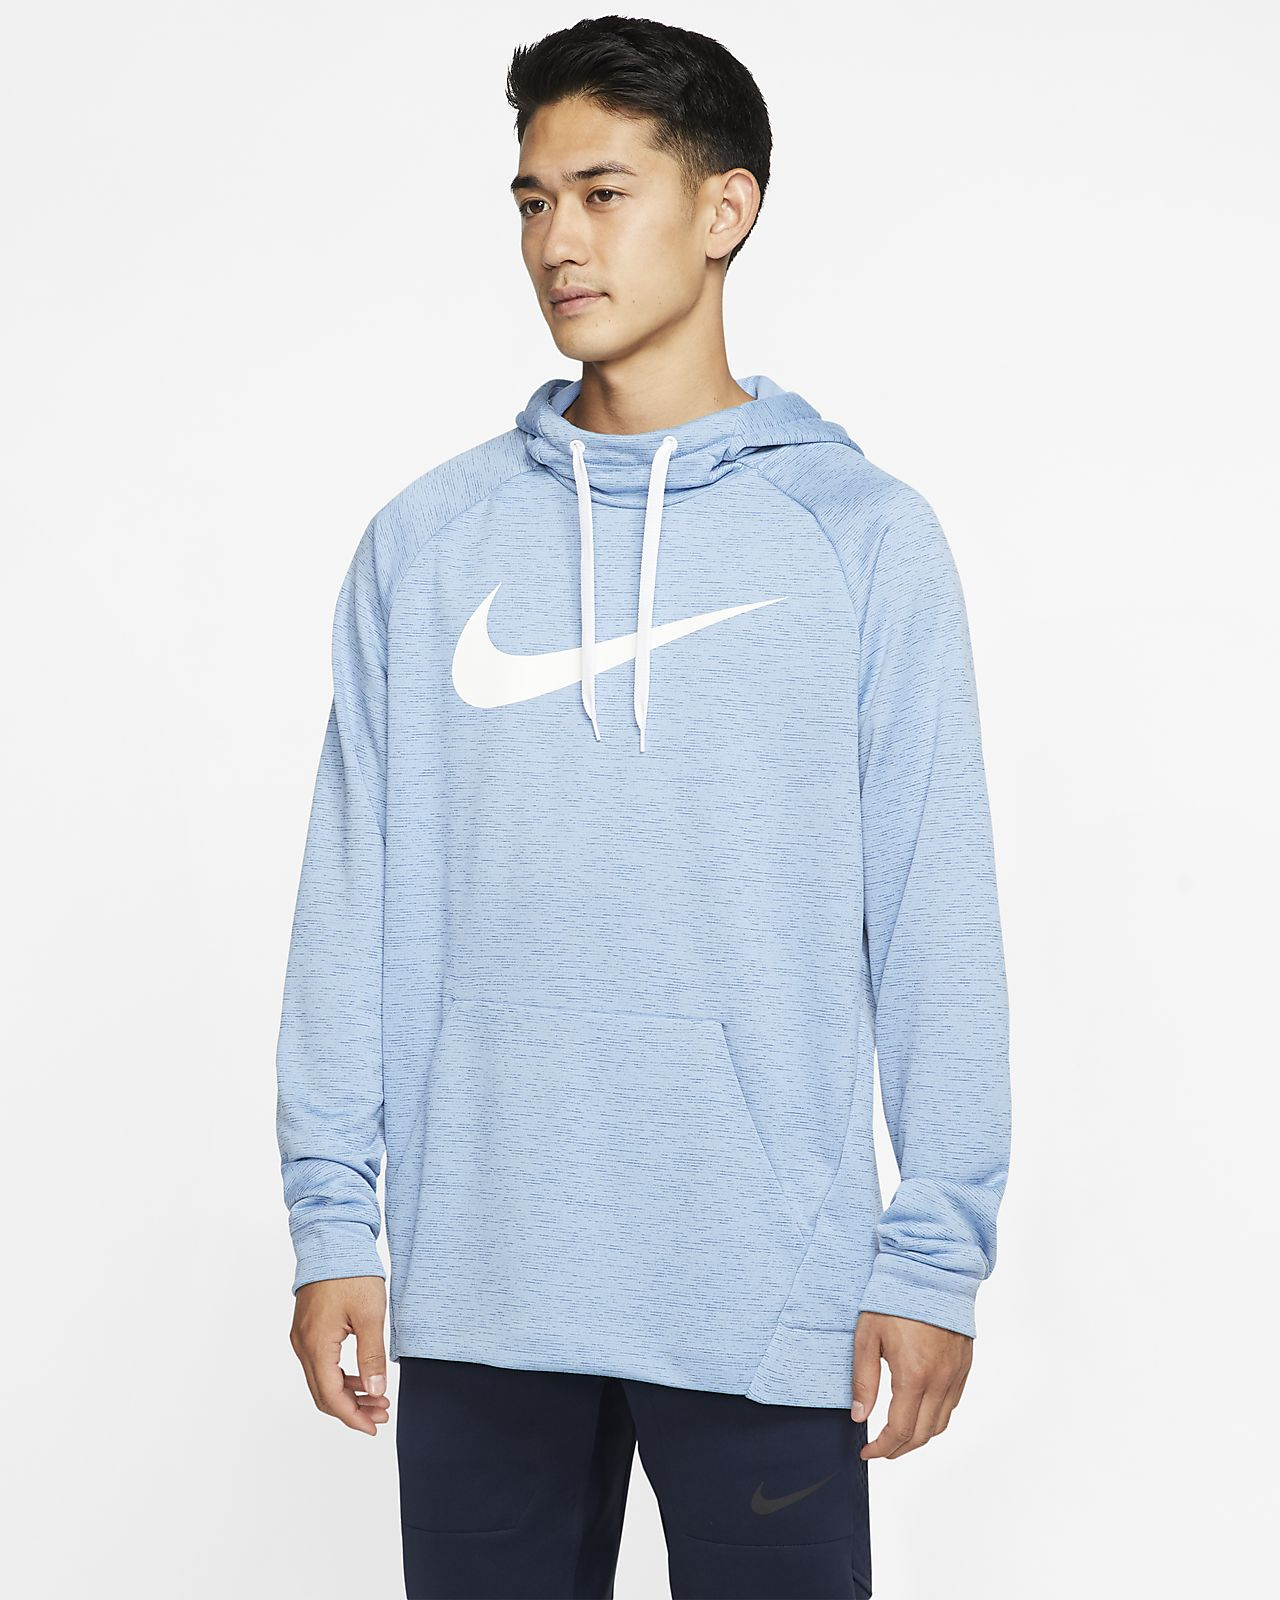 Nike Dri FIT Trainings Hoodie für Herren